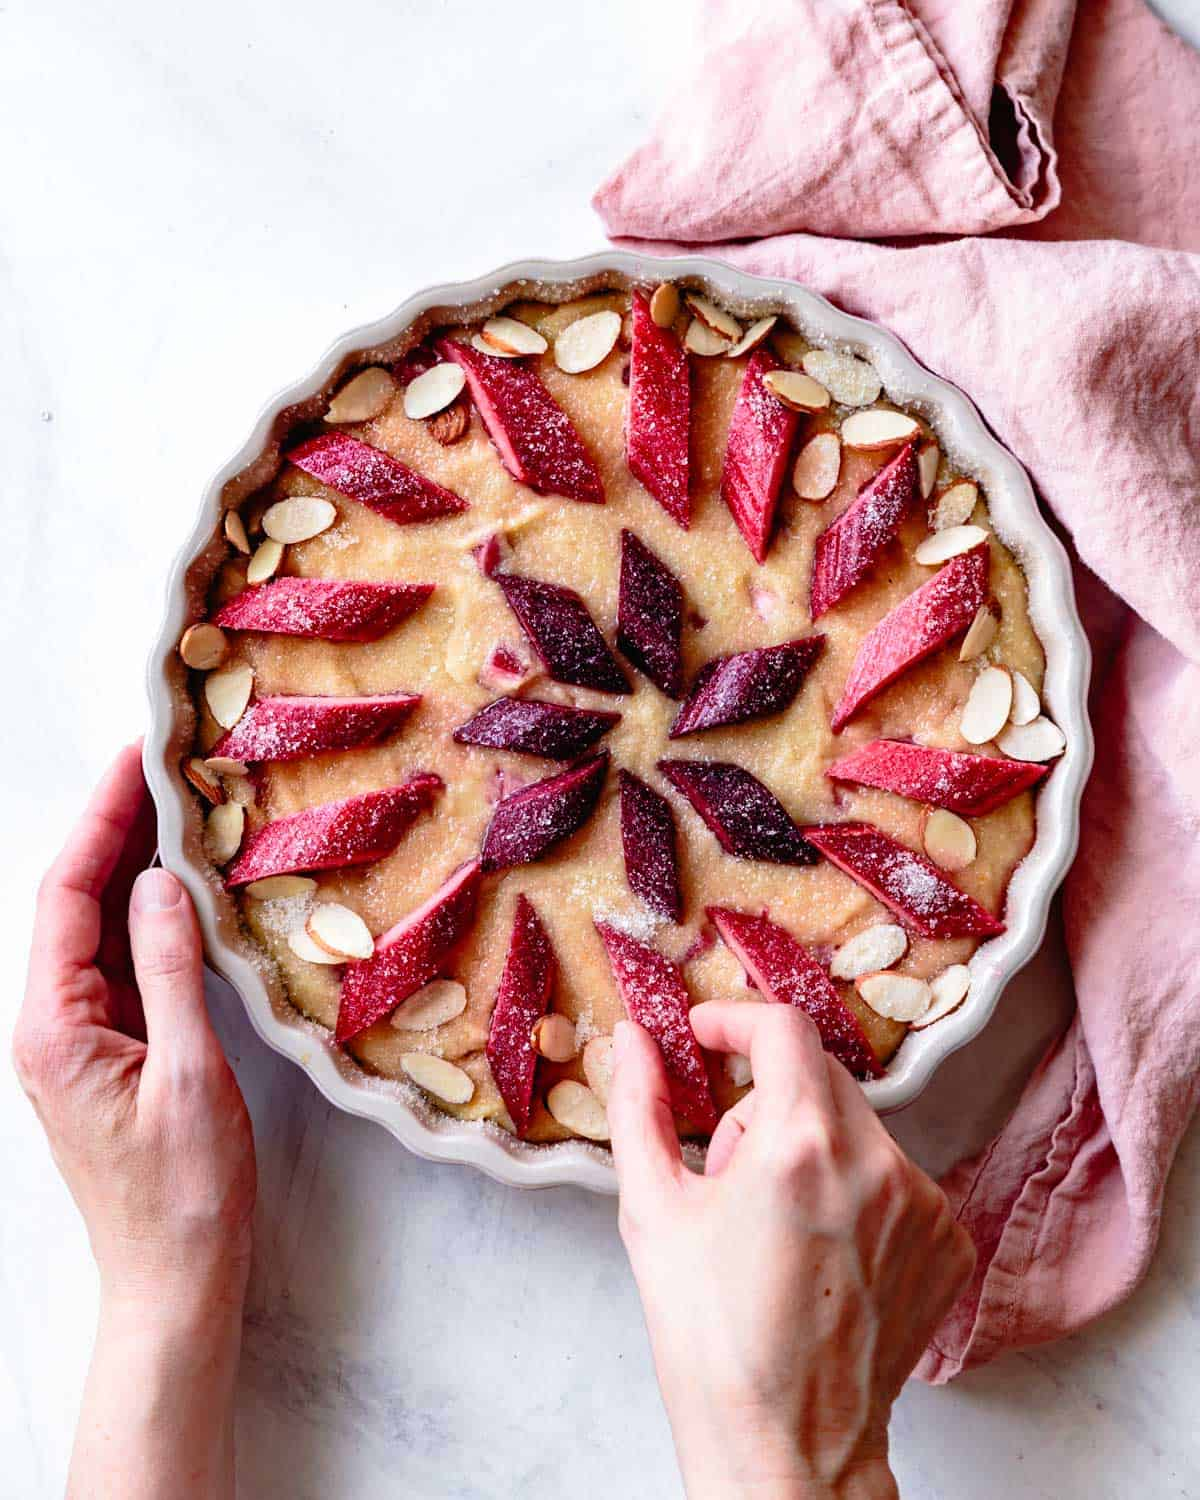 placing rhubarb slices and almonds over the cake